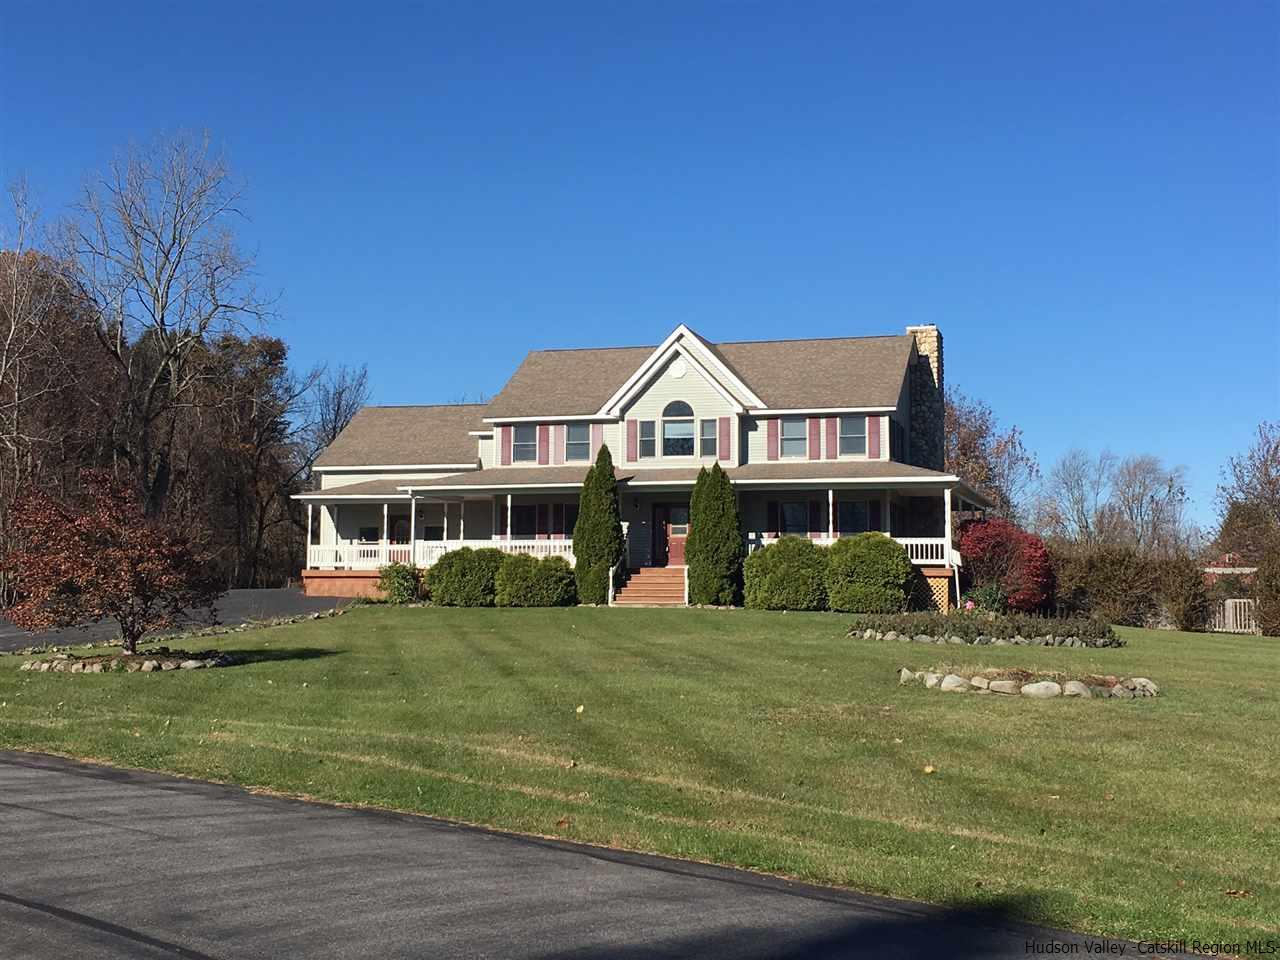 Single Family Home for Sale at 2 Sommerfield Drive 2 Sommerfield Drive Wallkill, New York 12589 United States